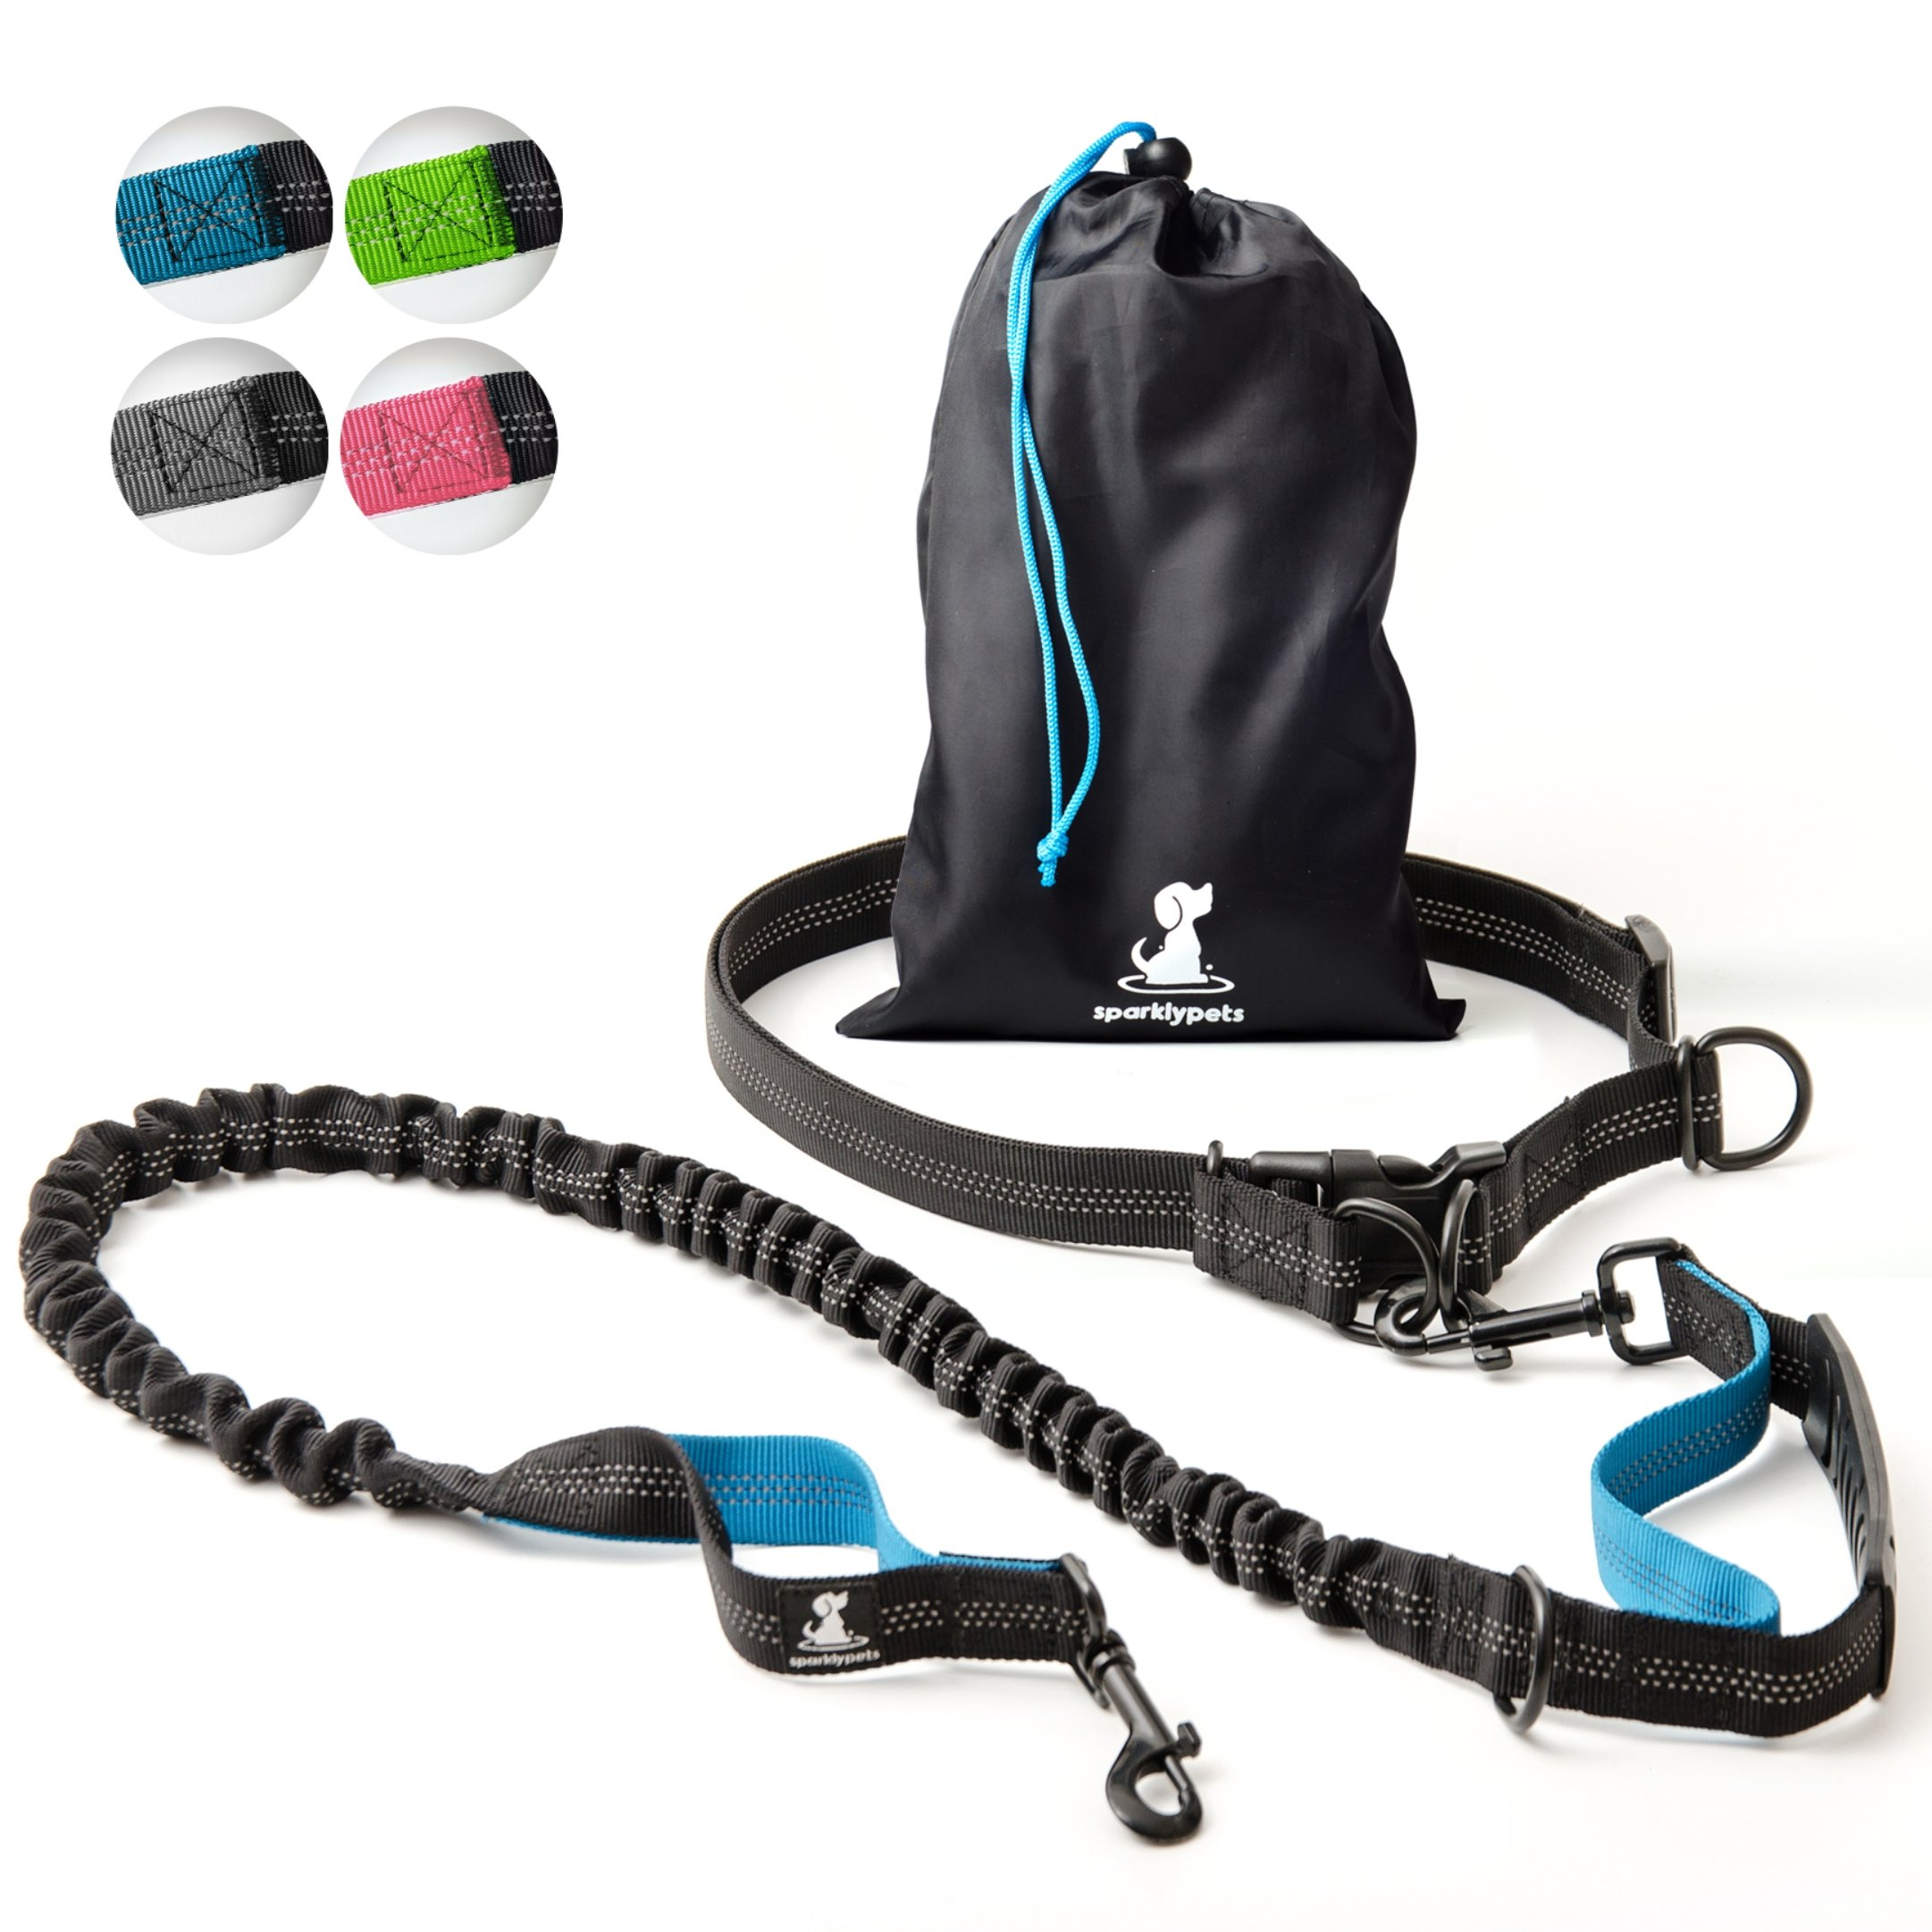 SparklyPets Hands-Free Dog Leash for Medium and Large Dogs - Professional Harness with Reflective Stitches for Training, Walking, Jogging and Running Your Pet (Blue) by SparklyPets